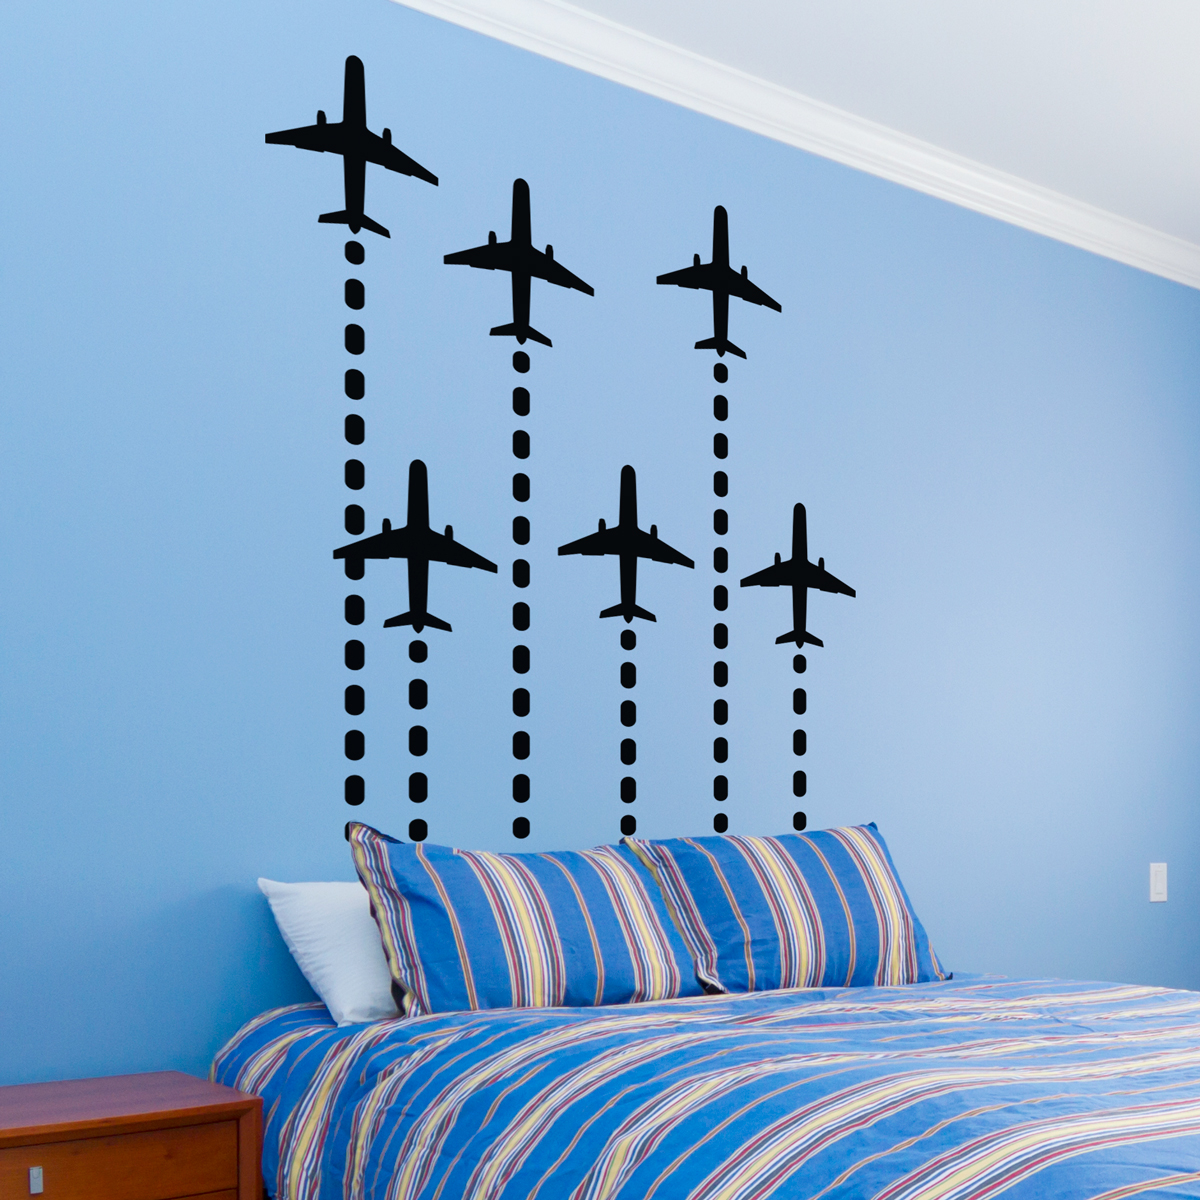 sc 1 st  Wallums & Rocket Planes Wall Decal